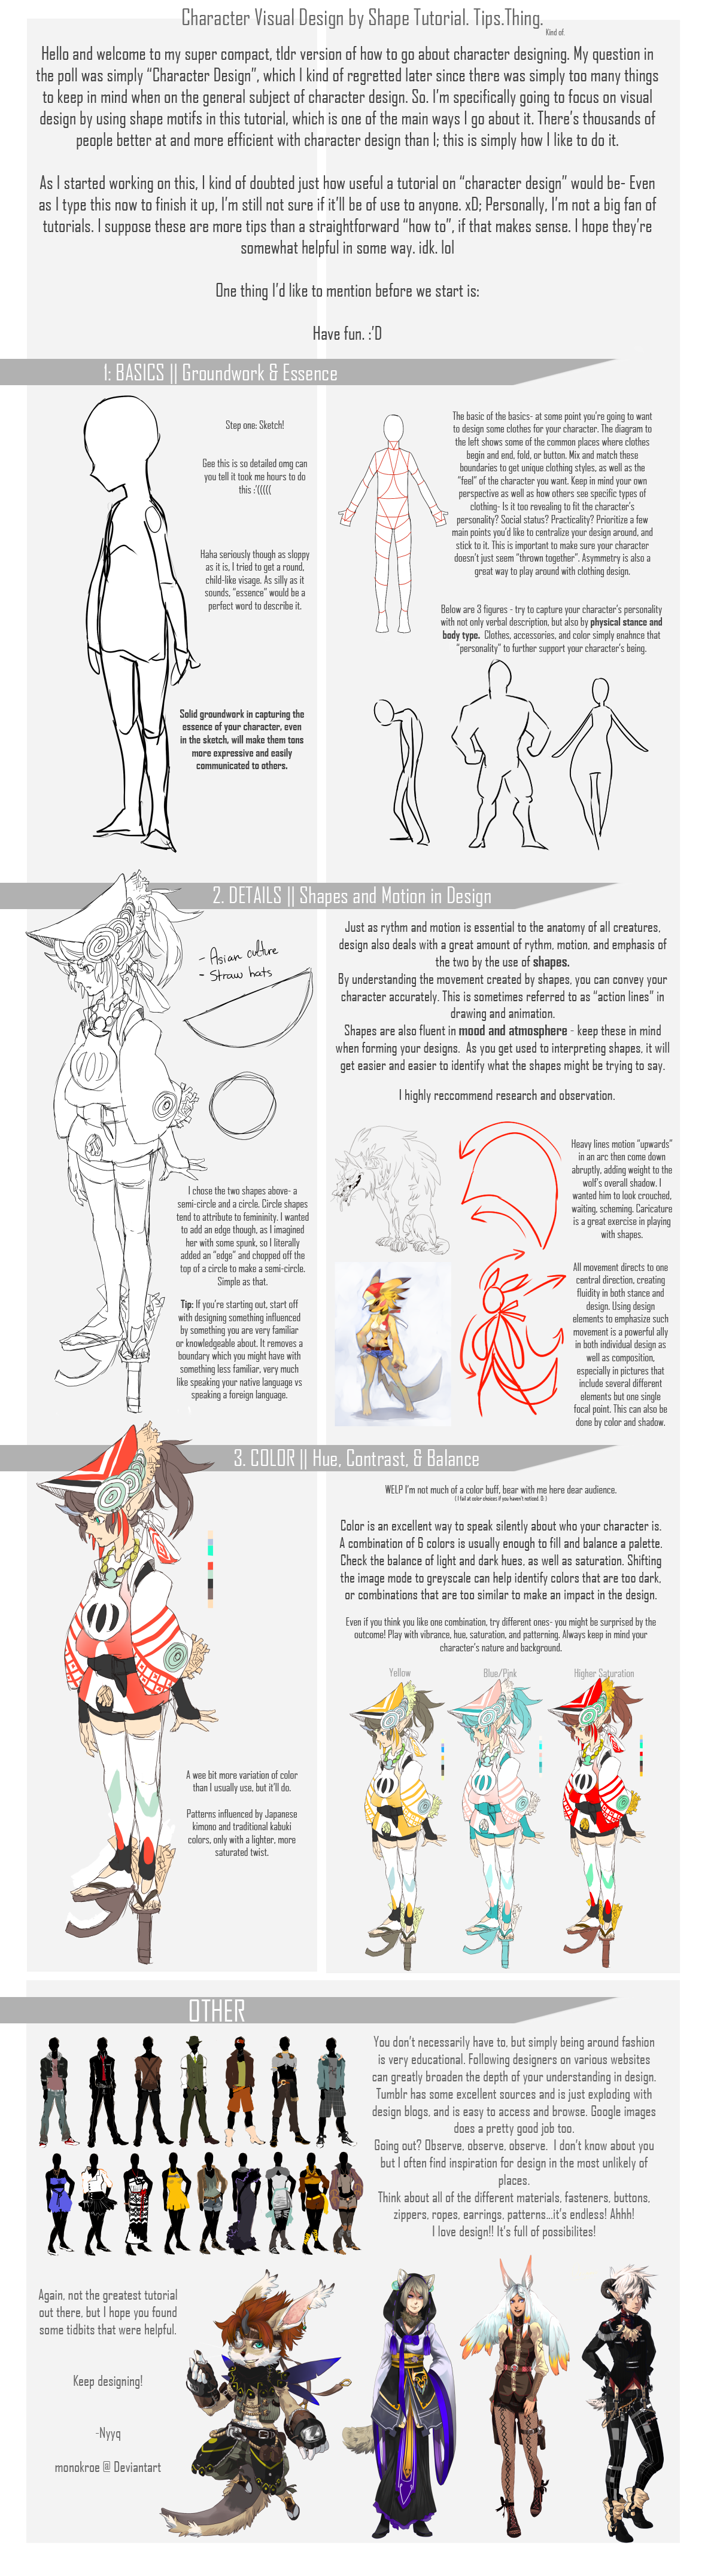 Character Design For Animation Tutorial : Basic character design by shape monokroe on deviantart